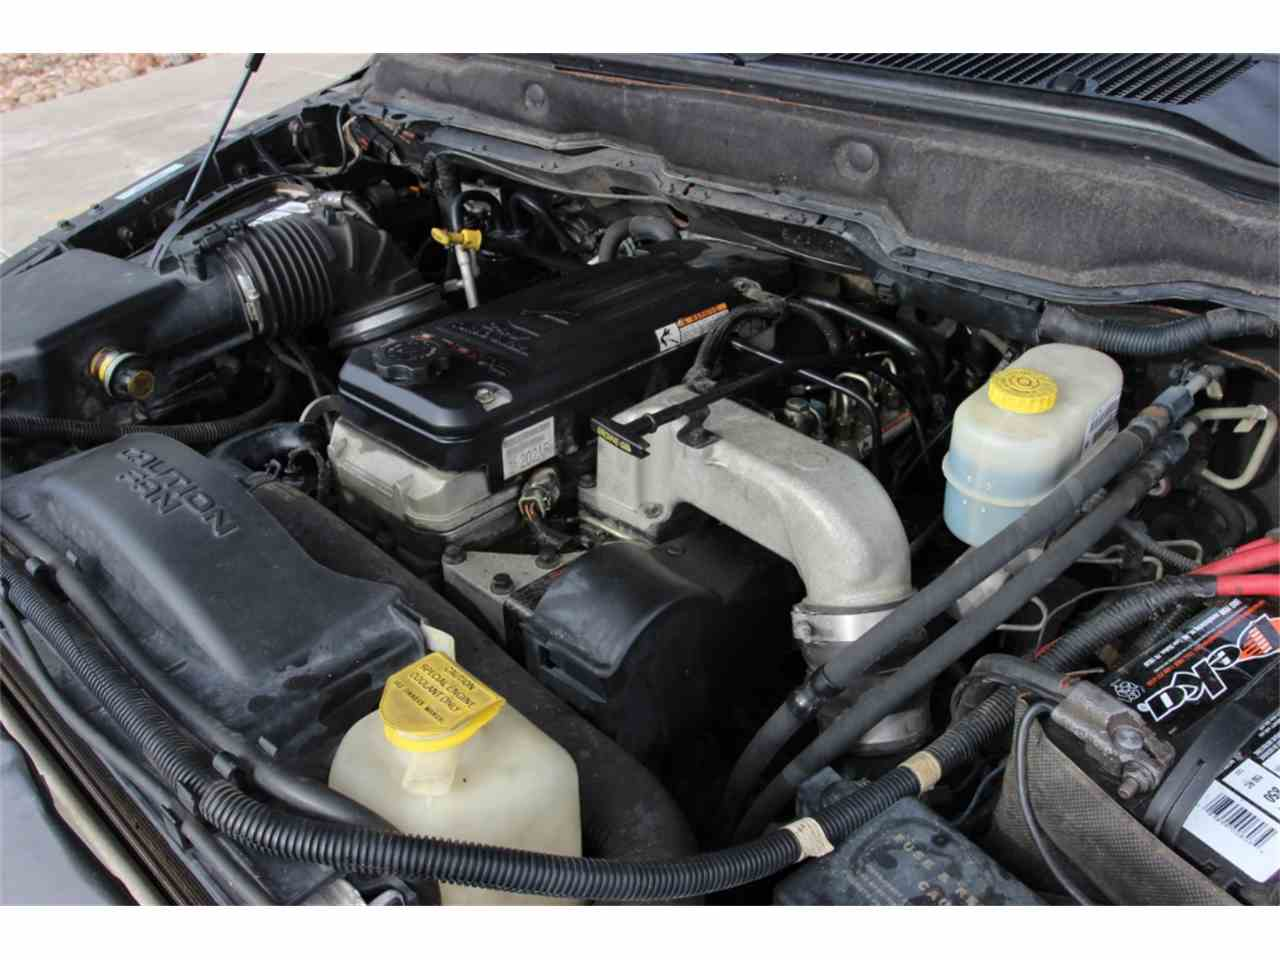 Large Picture of 2003 Ram 2500 located in Colorado - $15,500.00 Offered by Conquest Classic Cars - MOC4